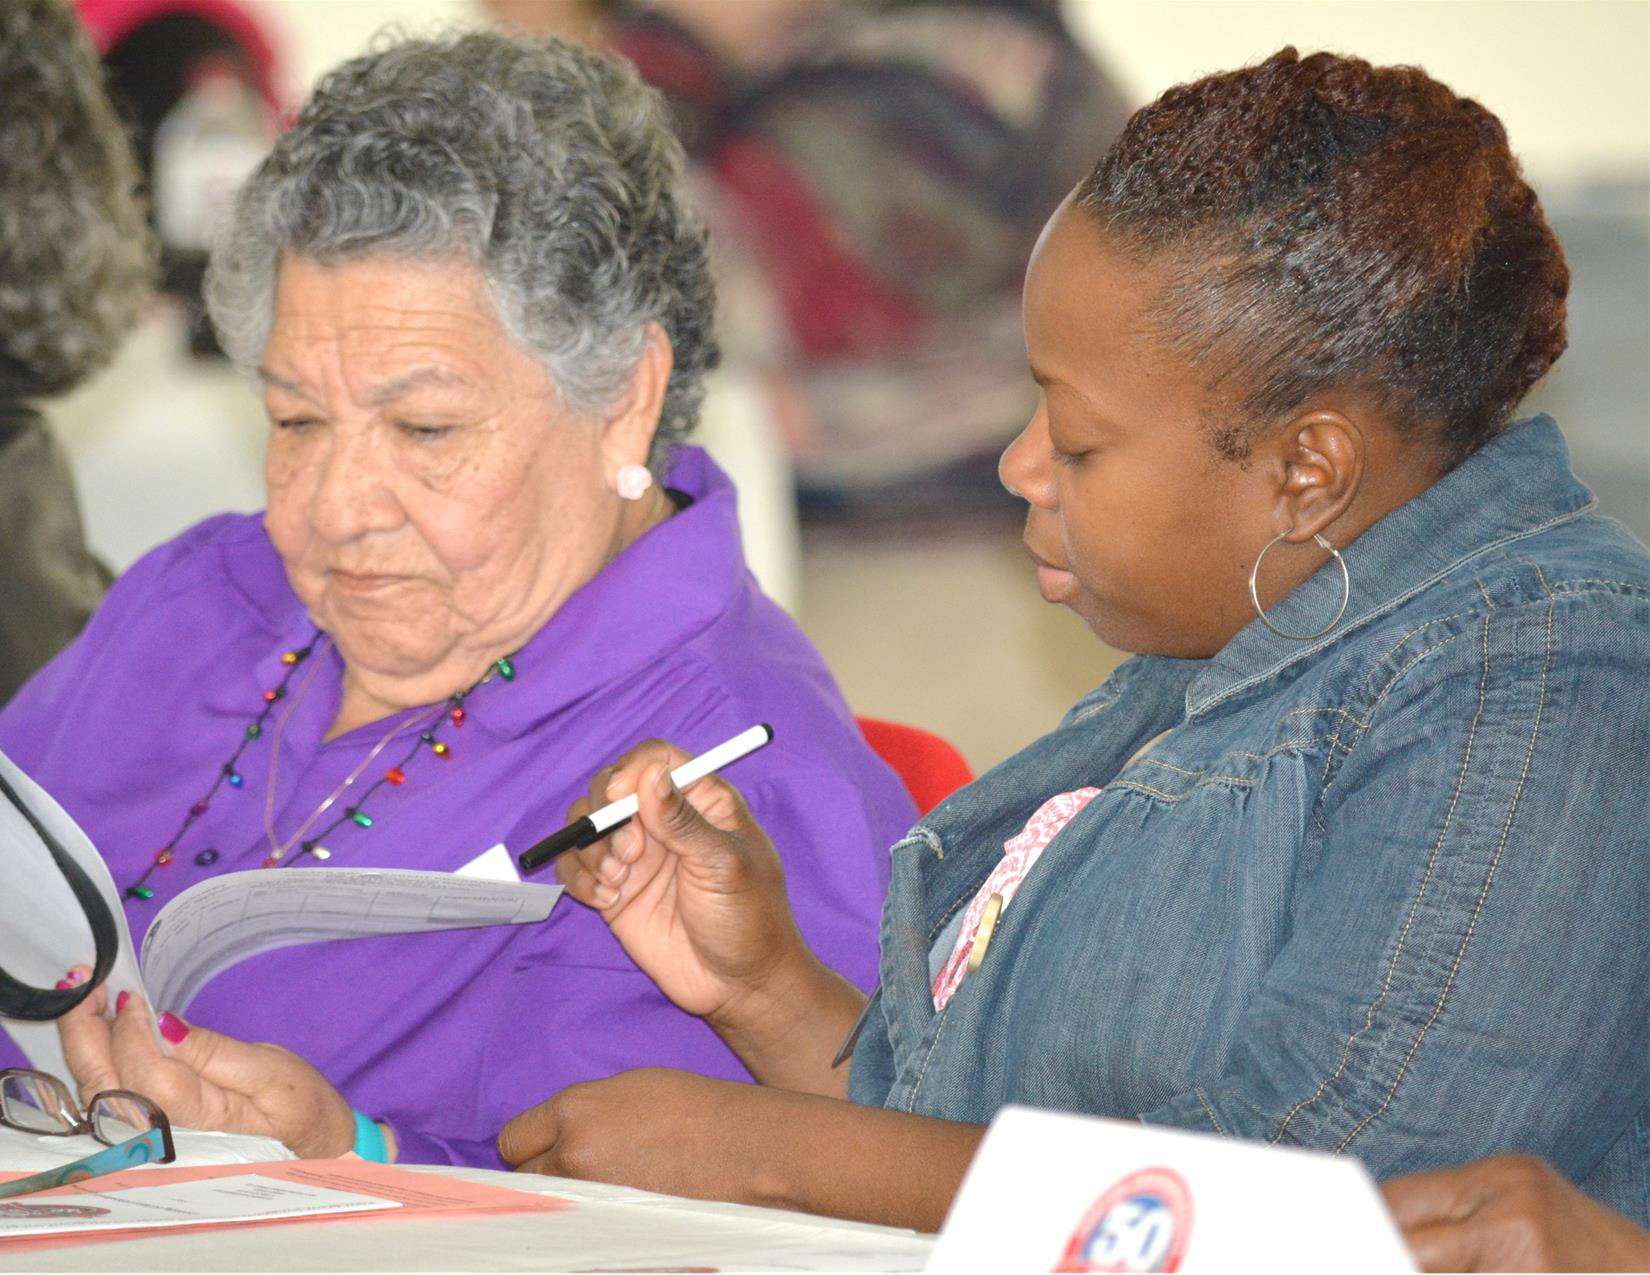 An African American woman points out text on a document. An gray-haired elderly woman looks on.